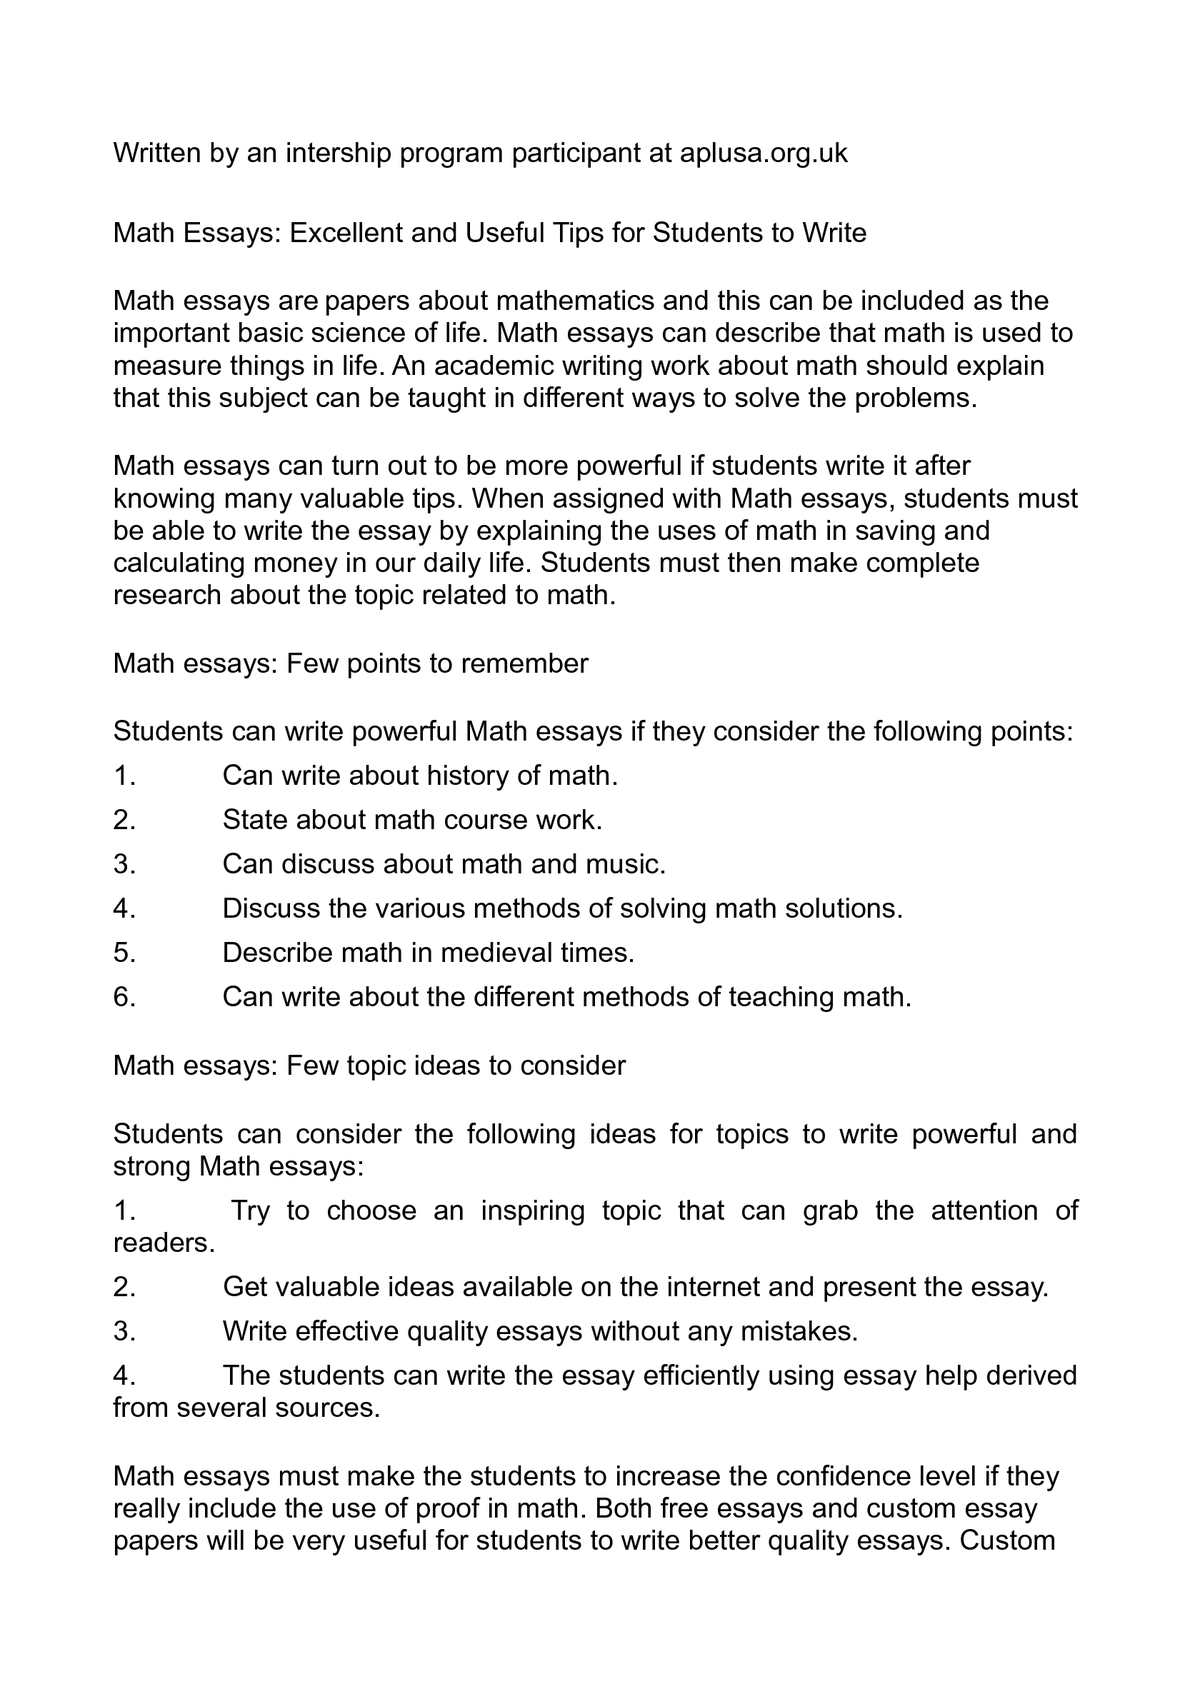 calameo math essays excellent and useful tips for students to write